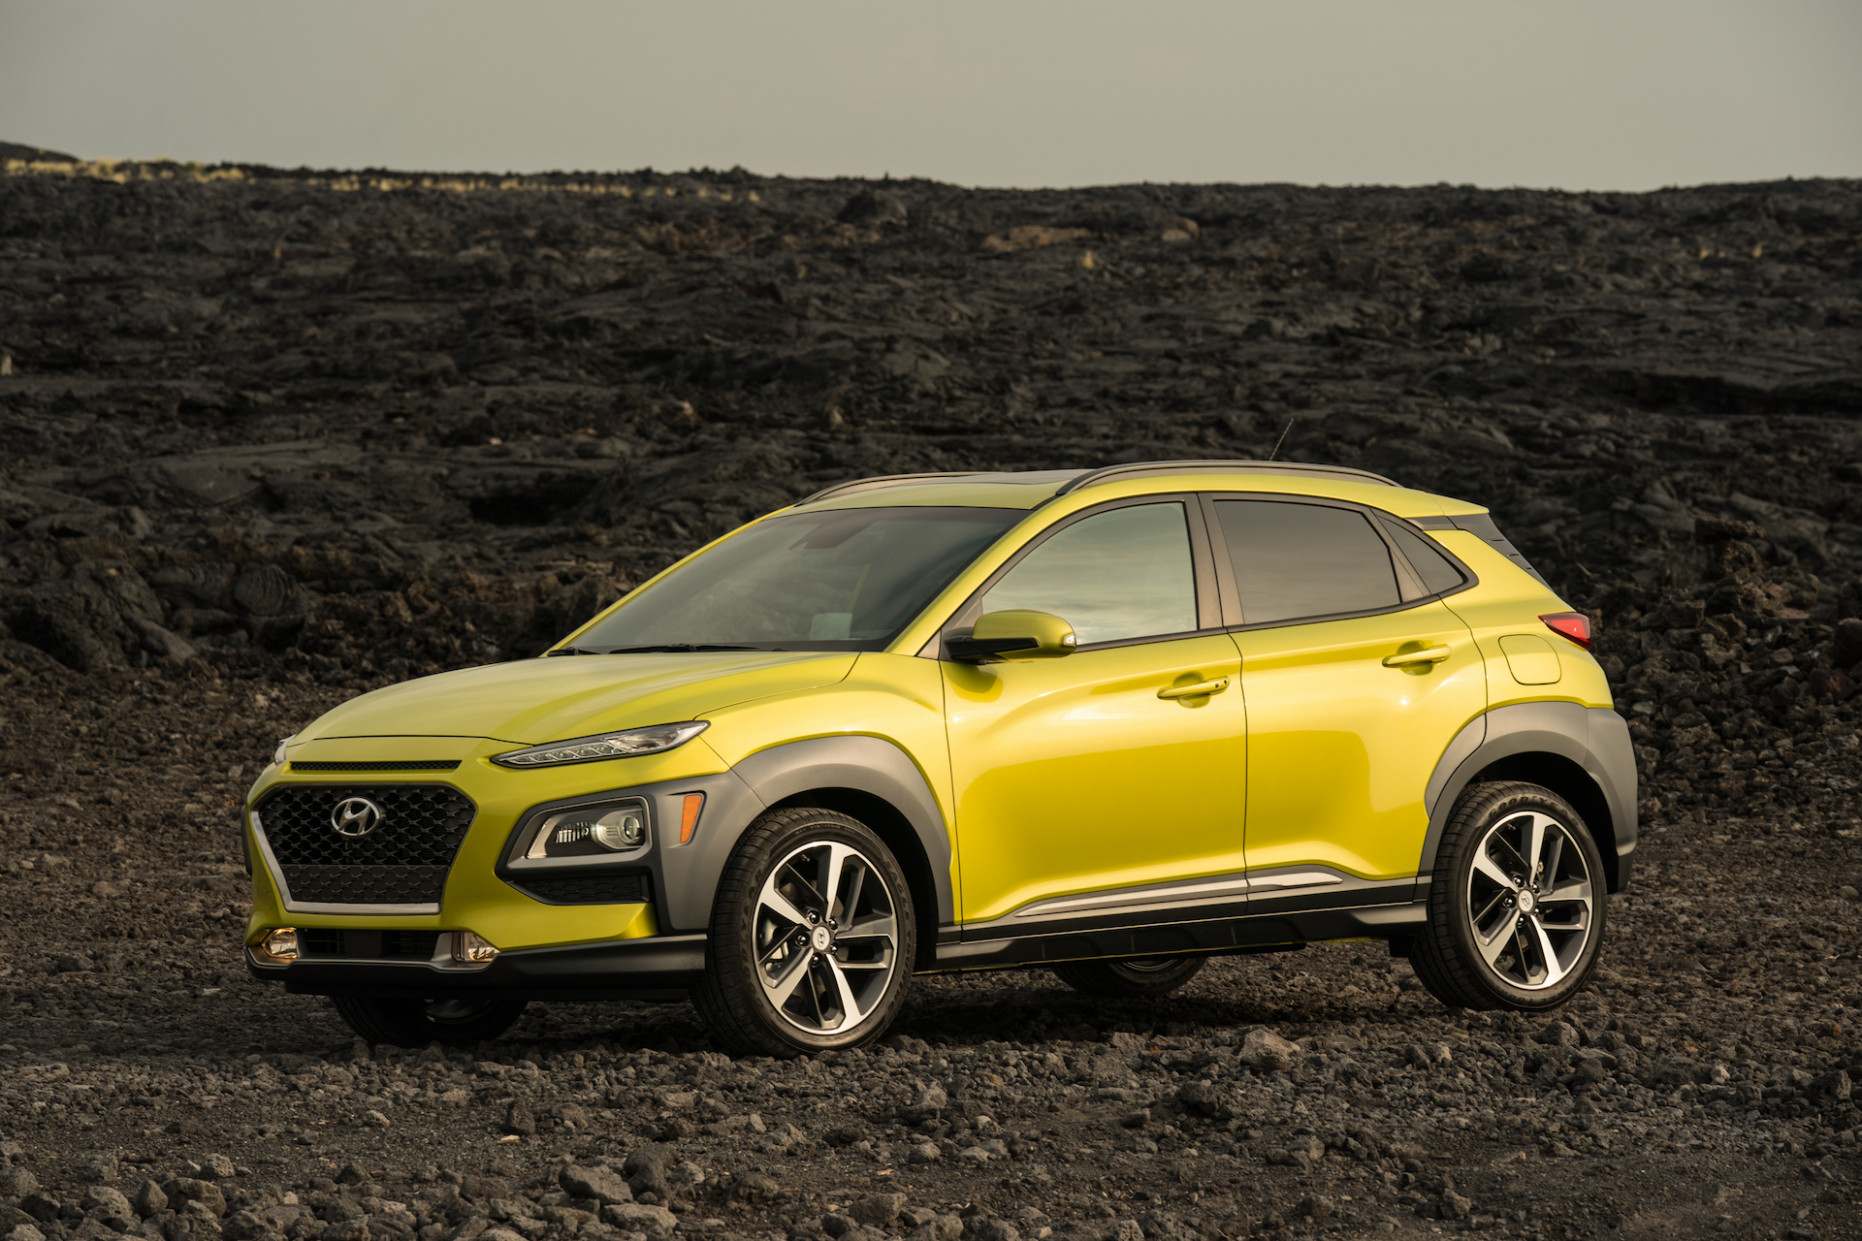 9 Hyundai Kona Review, Ratings, Specs, Prices, and Photos - The ..